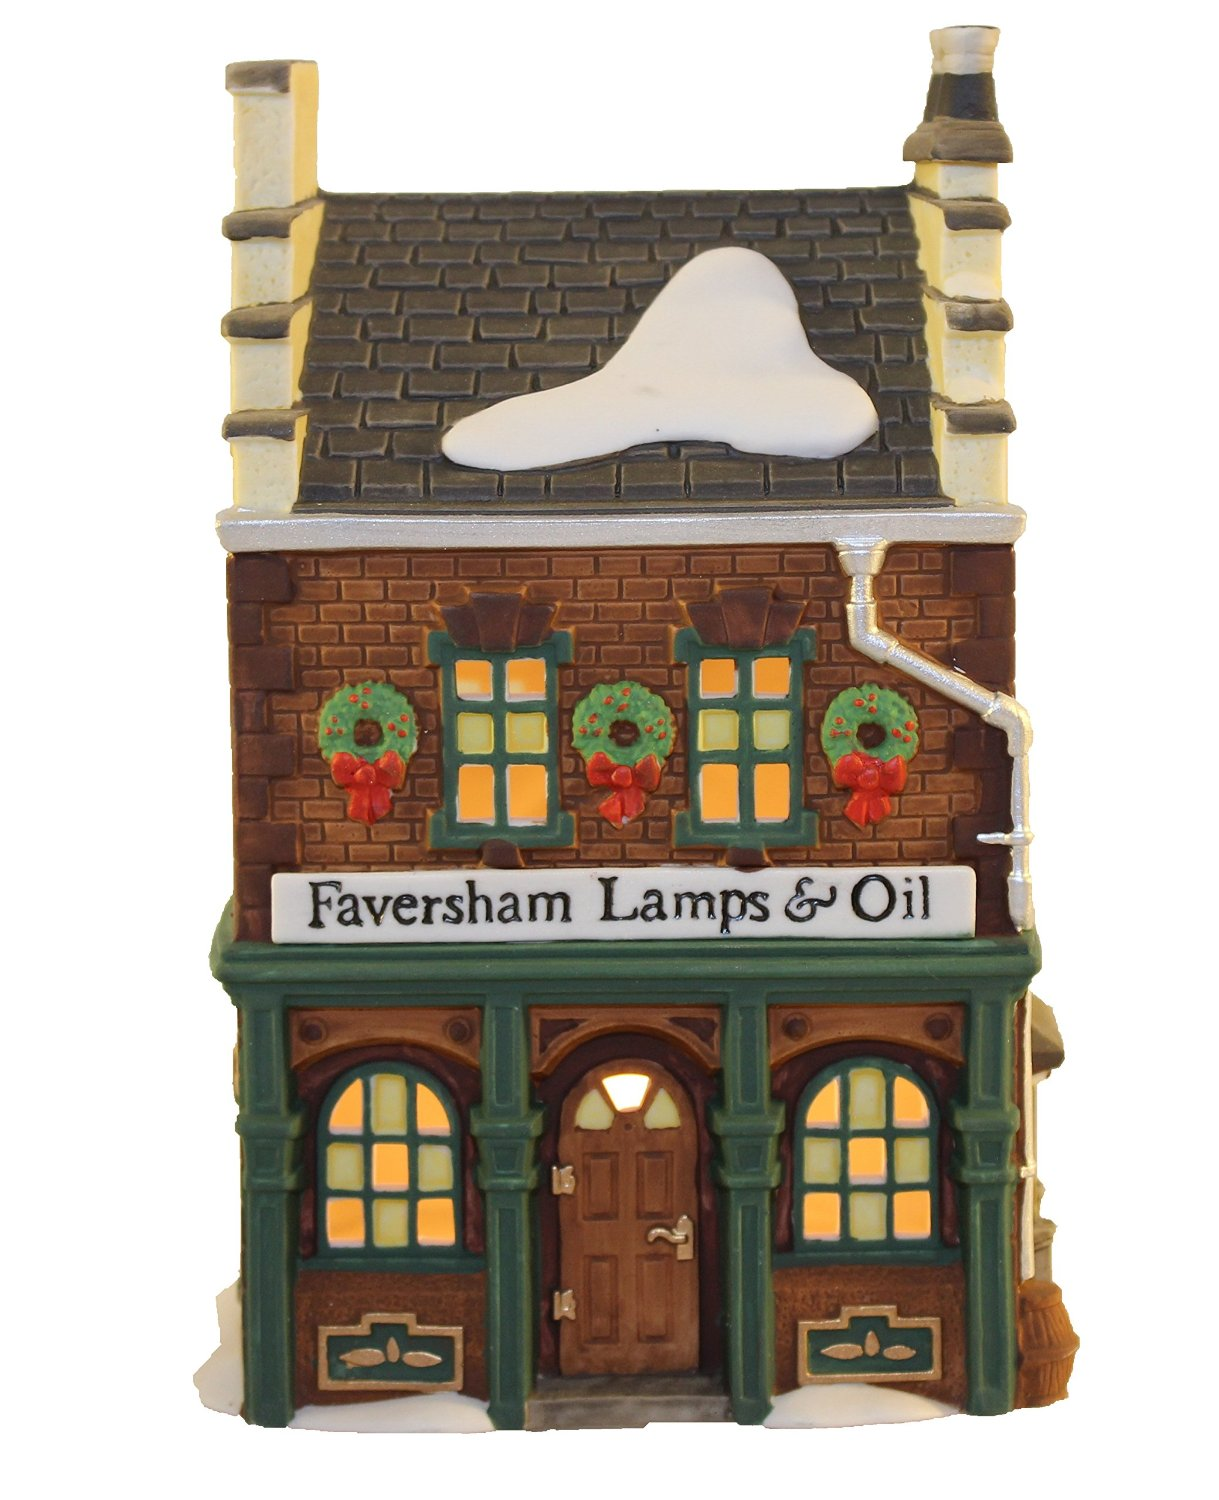 department 56 dickens village series faversham lamps oil 56 55522 village idiotz shop. Black Bedroom Furniture Sets. Home Design Ideas